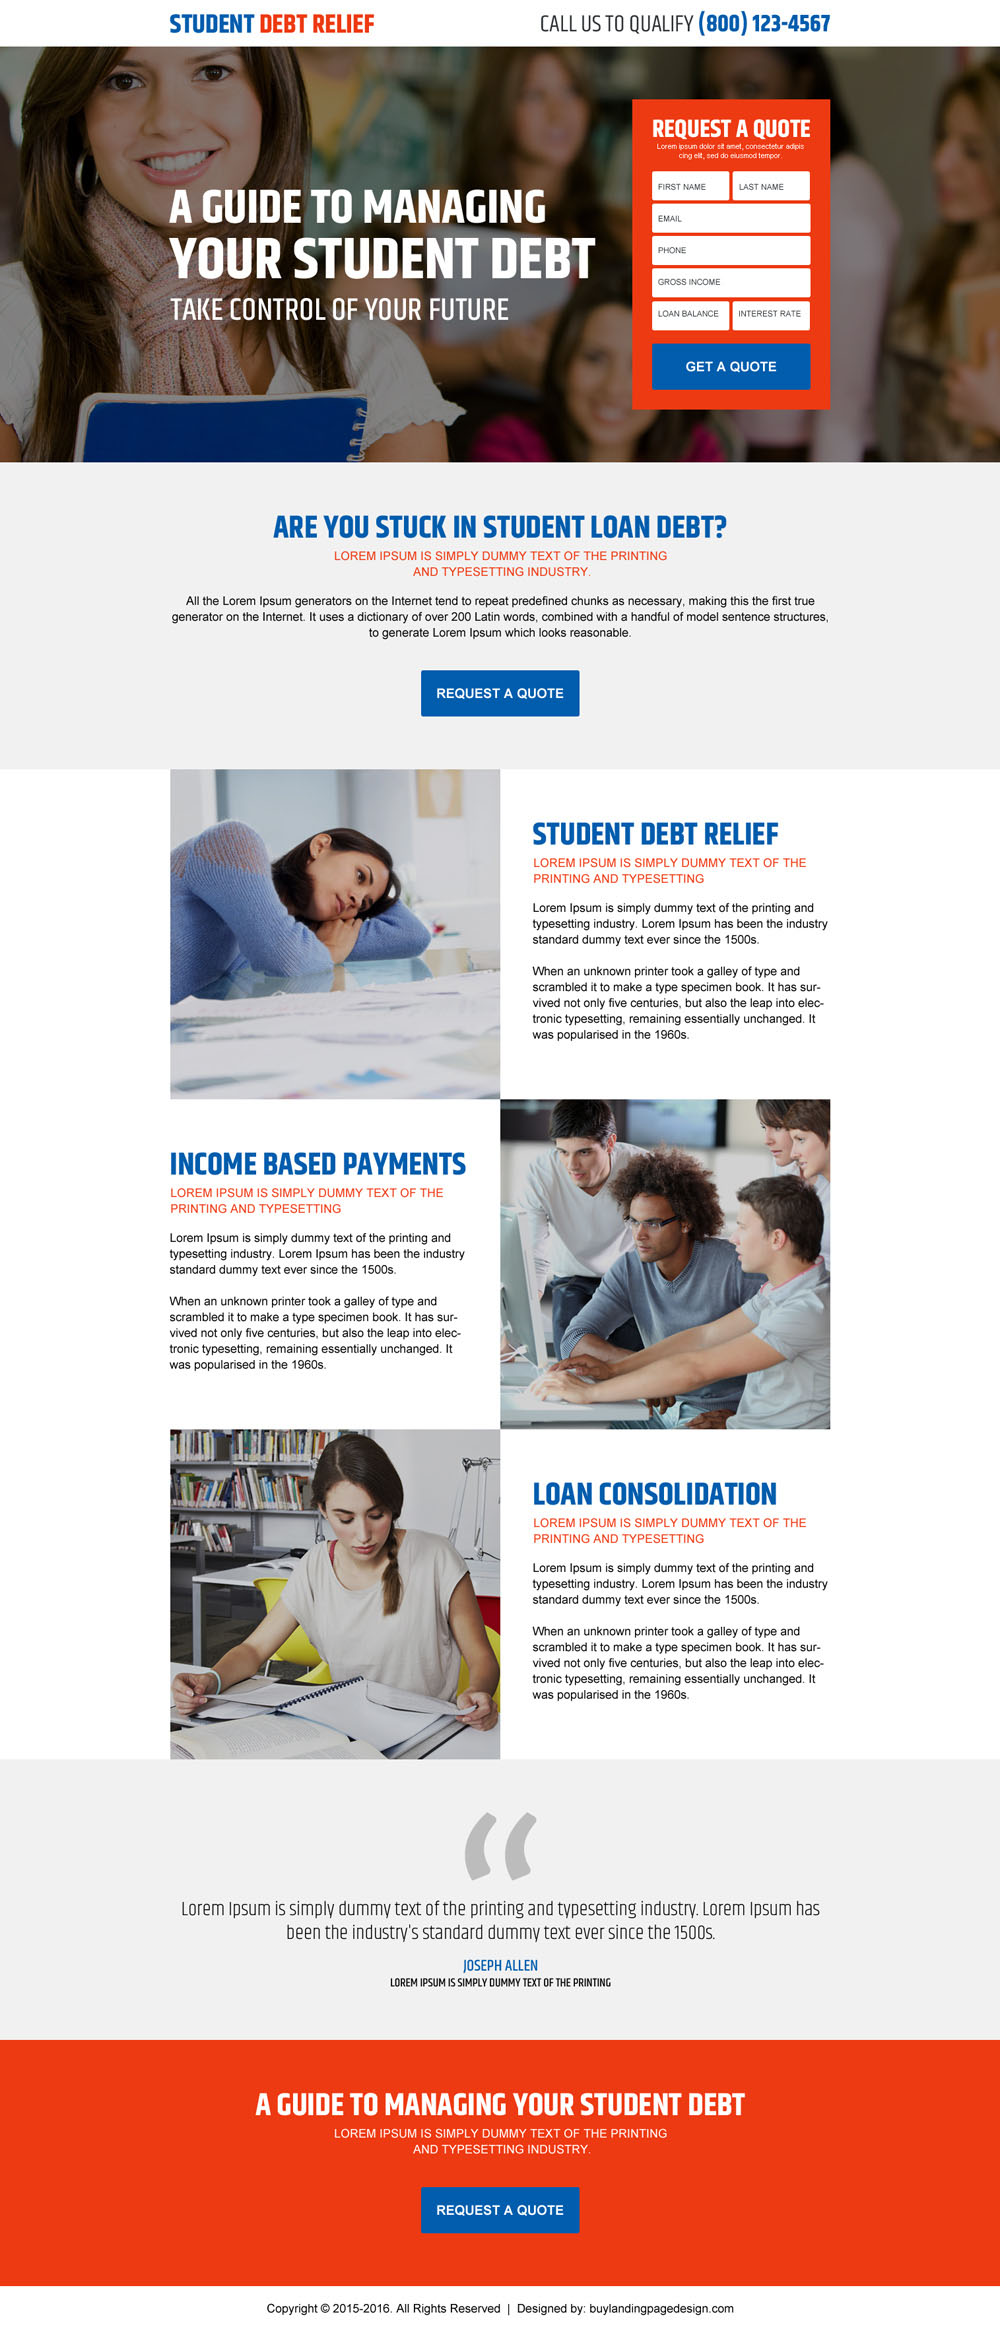 student-debt-relief-guide-free-quote-lead-gen-landing-page-design-045